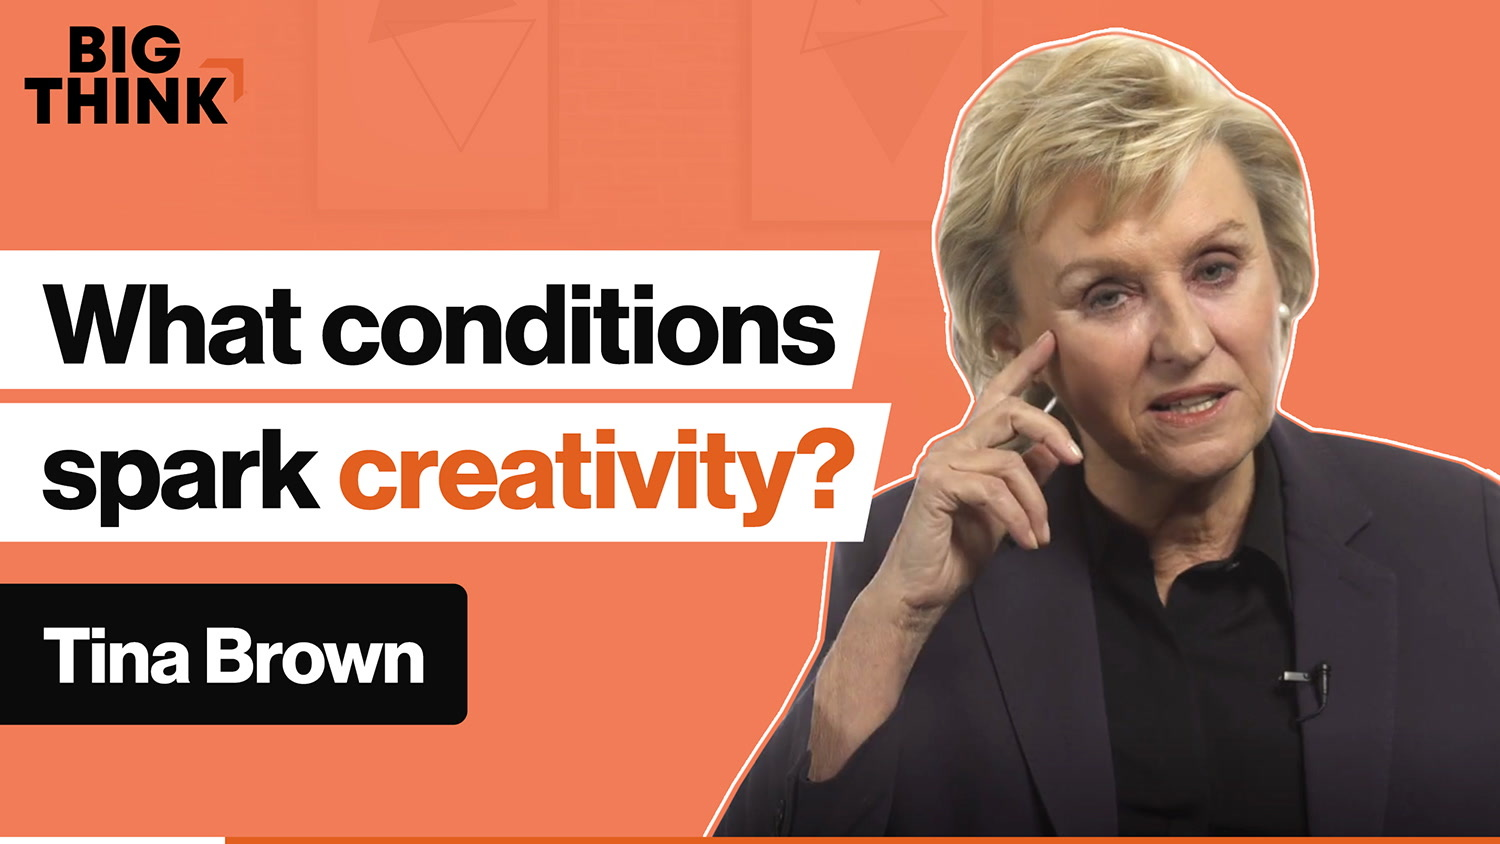 Under what conditions are we most creative?